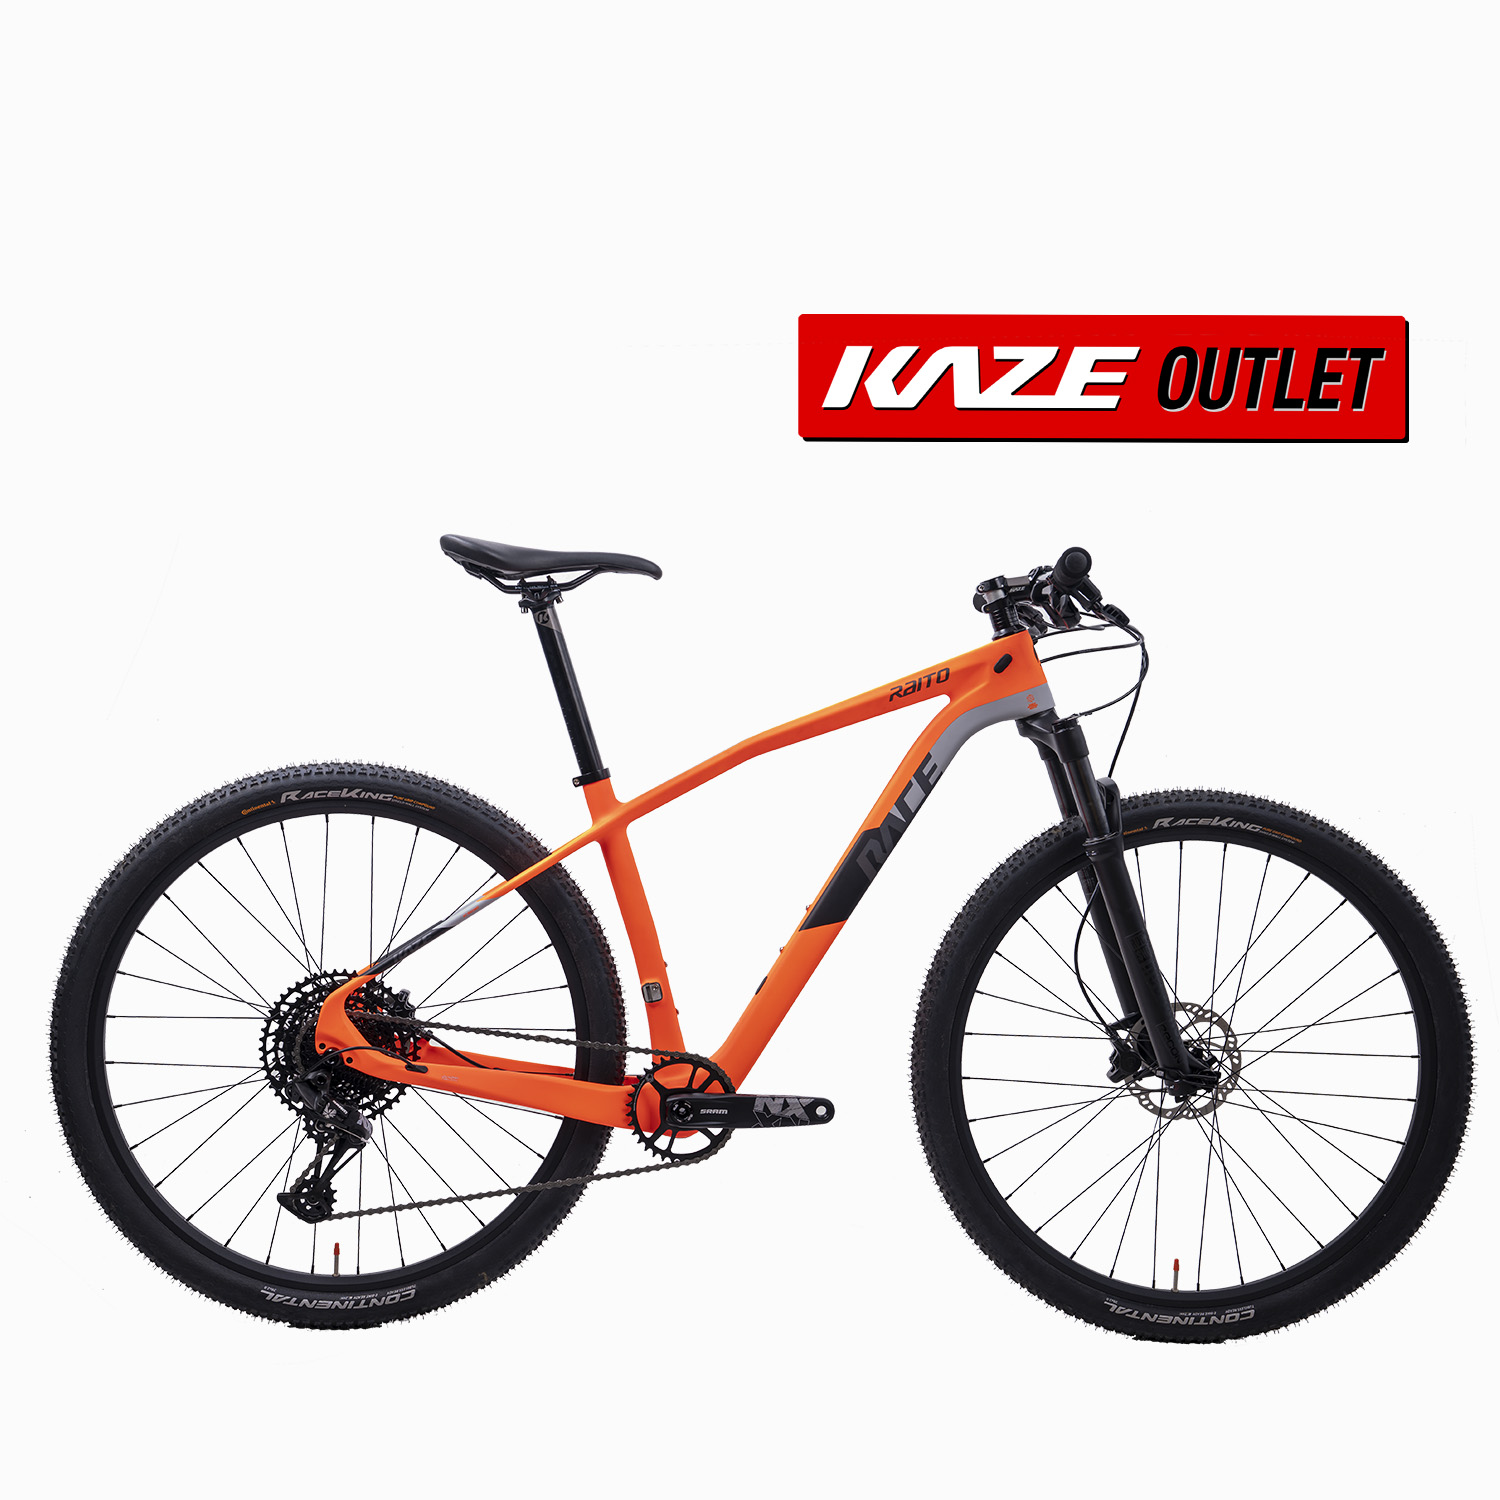 Kaze Raito 29er Outlet version